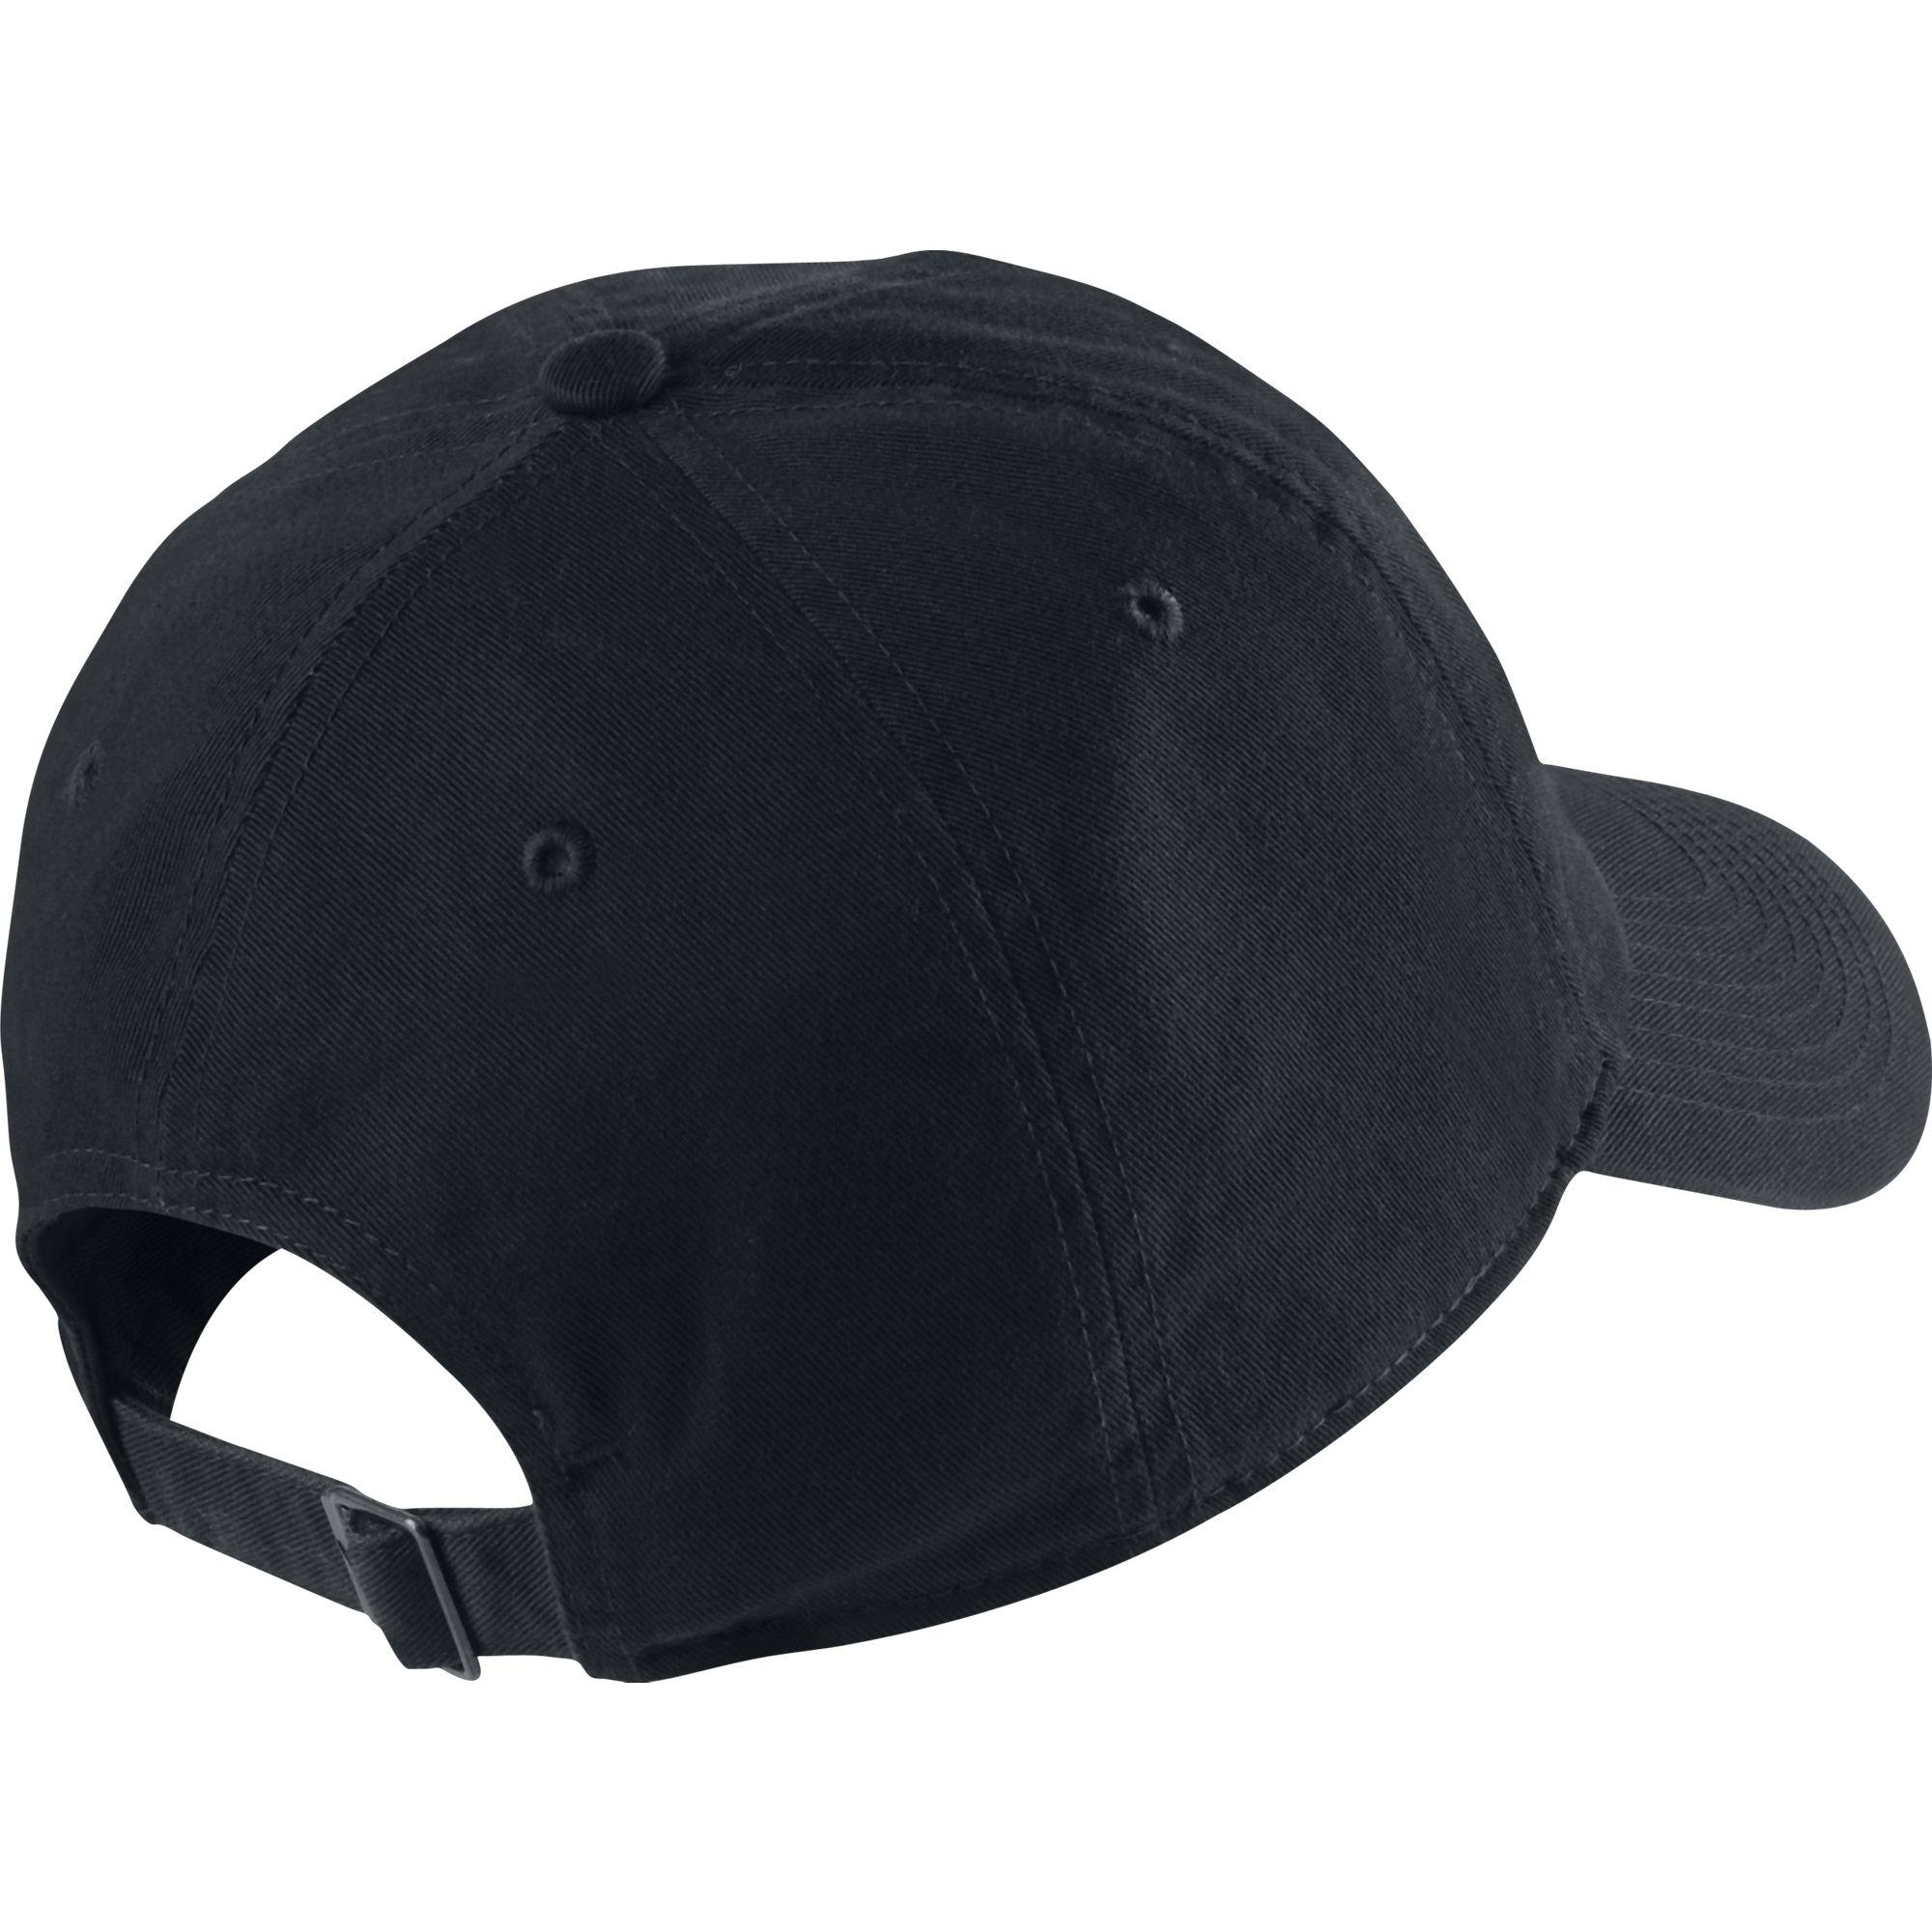 89b648423a0 Nike Swoosh H86 Adjustable Cap - Black White - Tennisnuts.com